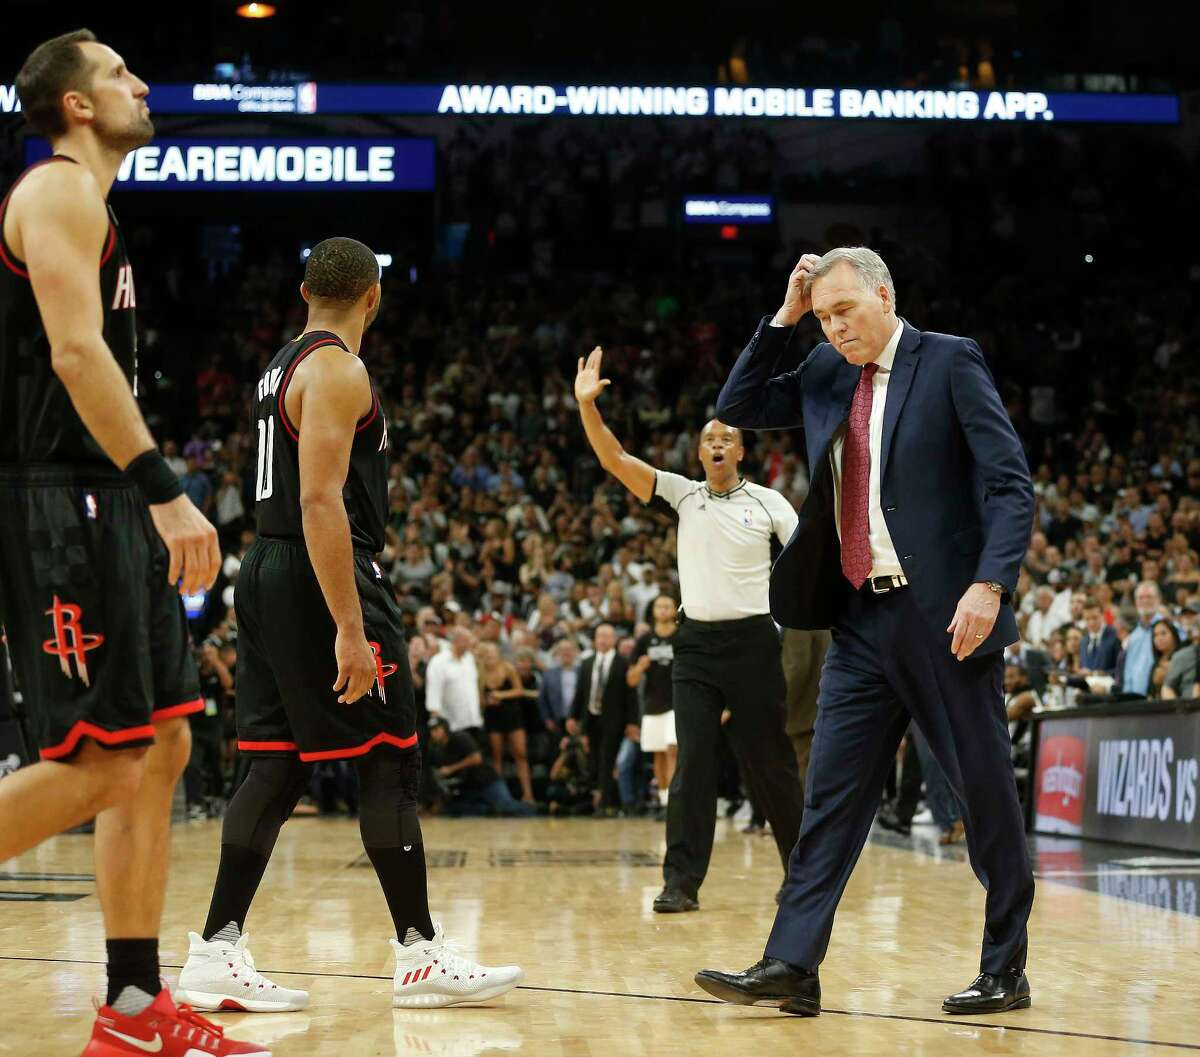 Houston Rockets head coach Mike D'Antoni reacts as he walks out for a time out in the final seconds during overtime of Game 5 of the second round of the Western Conference NBA playoffs at AT&T Center, Tuesday, May 9, 2017, in San Antonio.